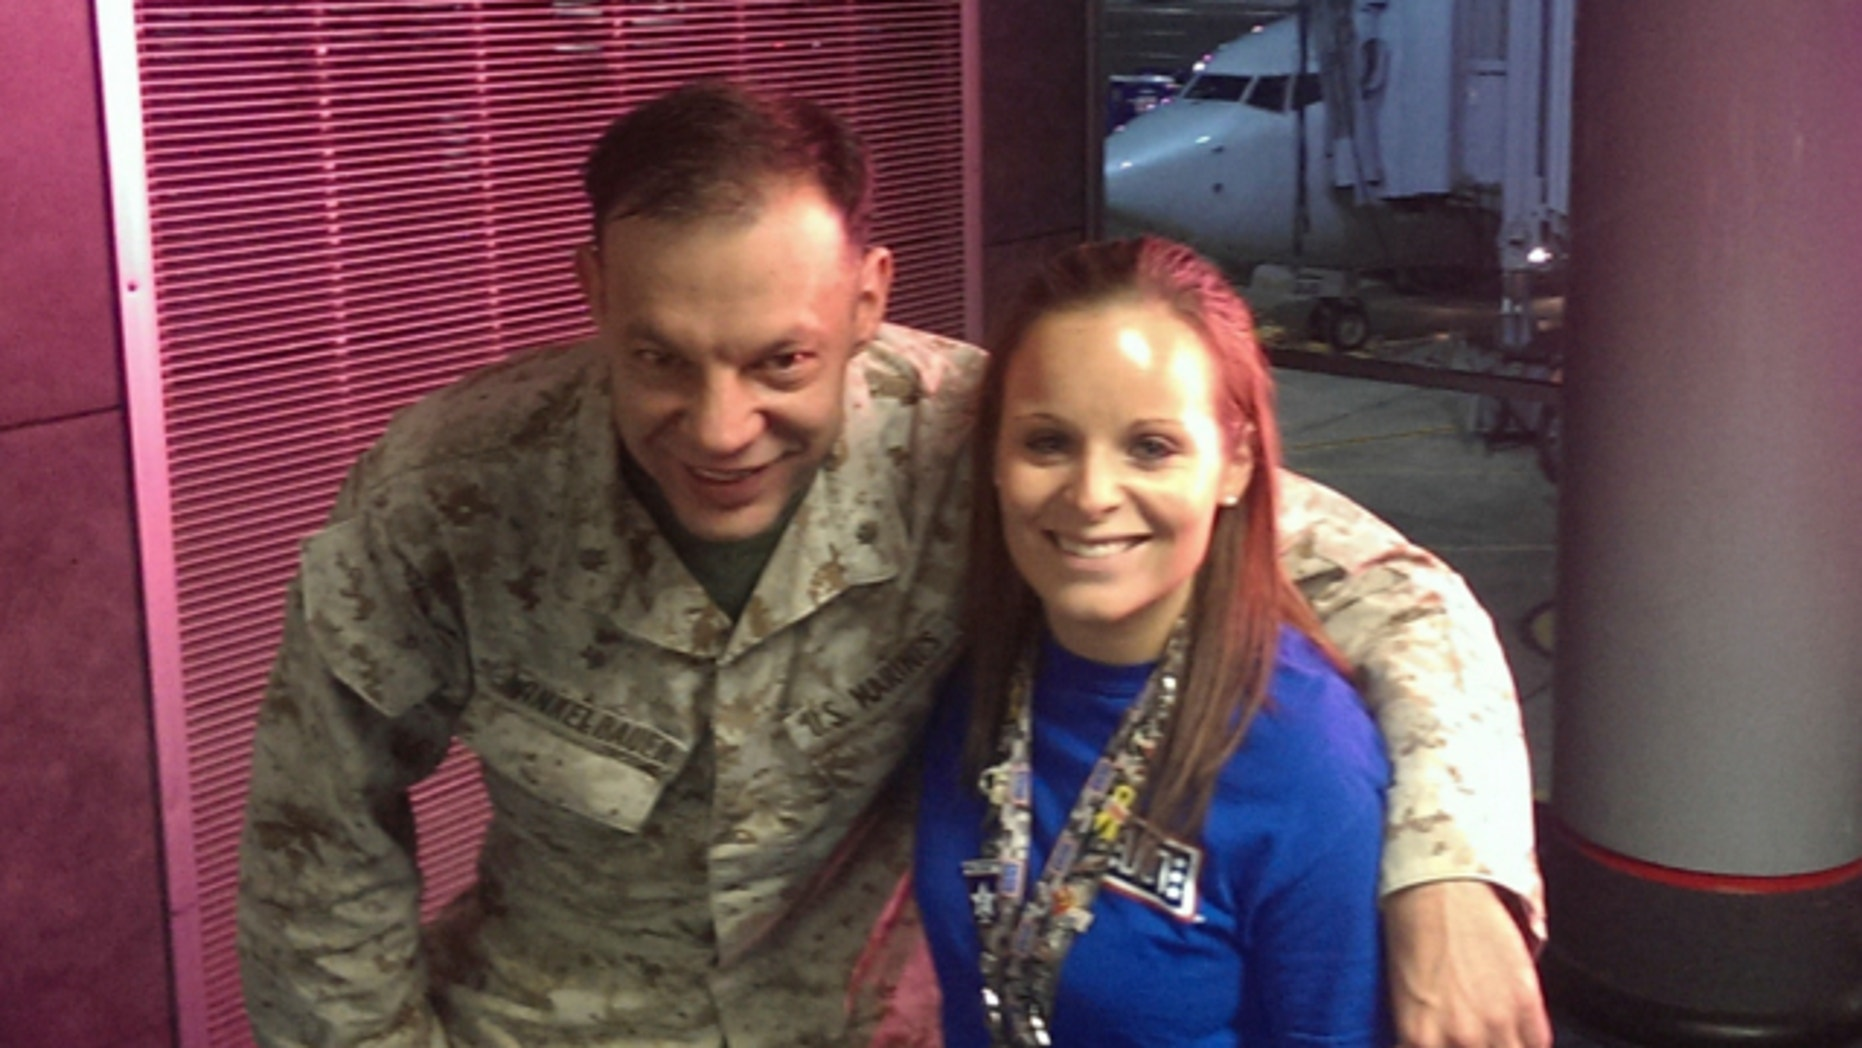 Nov. 4, 2013: Lindsy Wadas, director of the USO Center at Chicago's O'Hare International Airport, is shown with U.S. Marine Maj. Matthew Winkelbauer, left, after he and 13 other Marines arrived in Chicago before the final leg of their trip home to San Diego after a tour in Afghanistan.